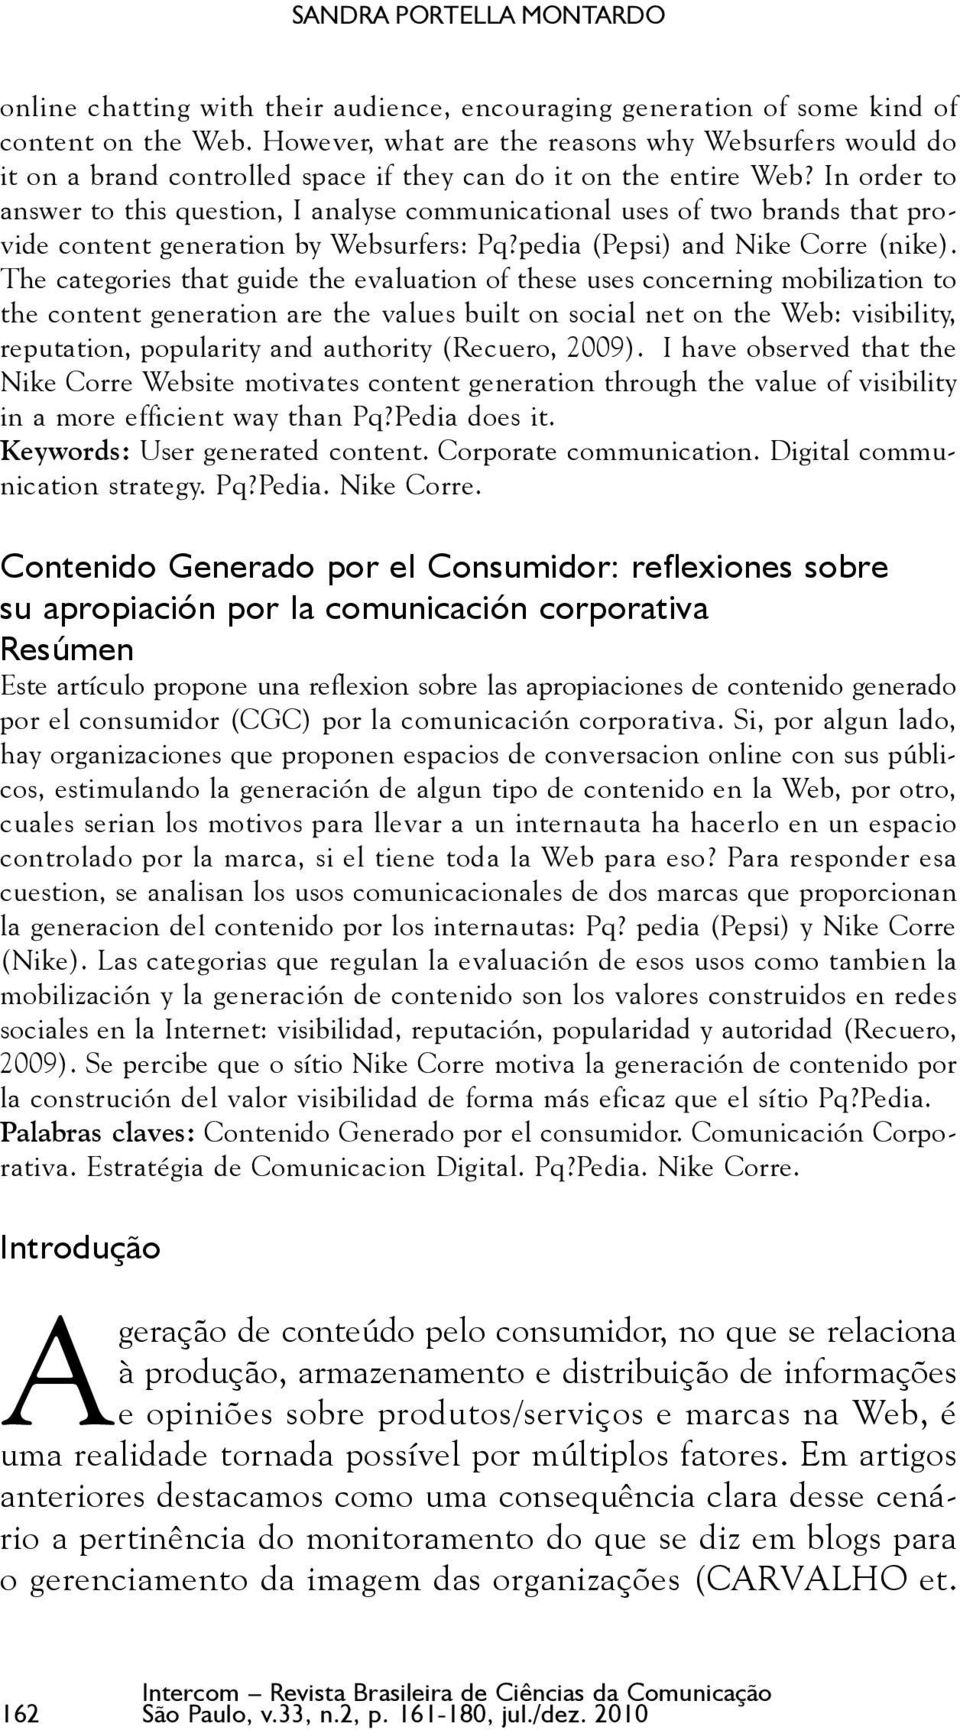 In order to answer to this question, I analyse communicational uses of two brands that provide content generation by Websurfers: Pq?pedia (Pepsi) and Nike Corre (nike).